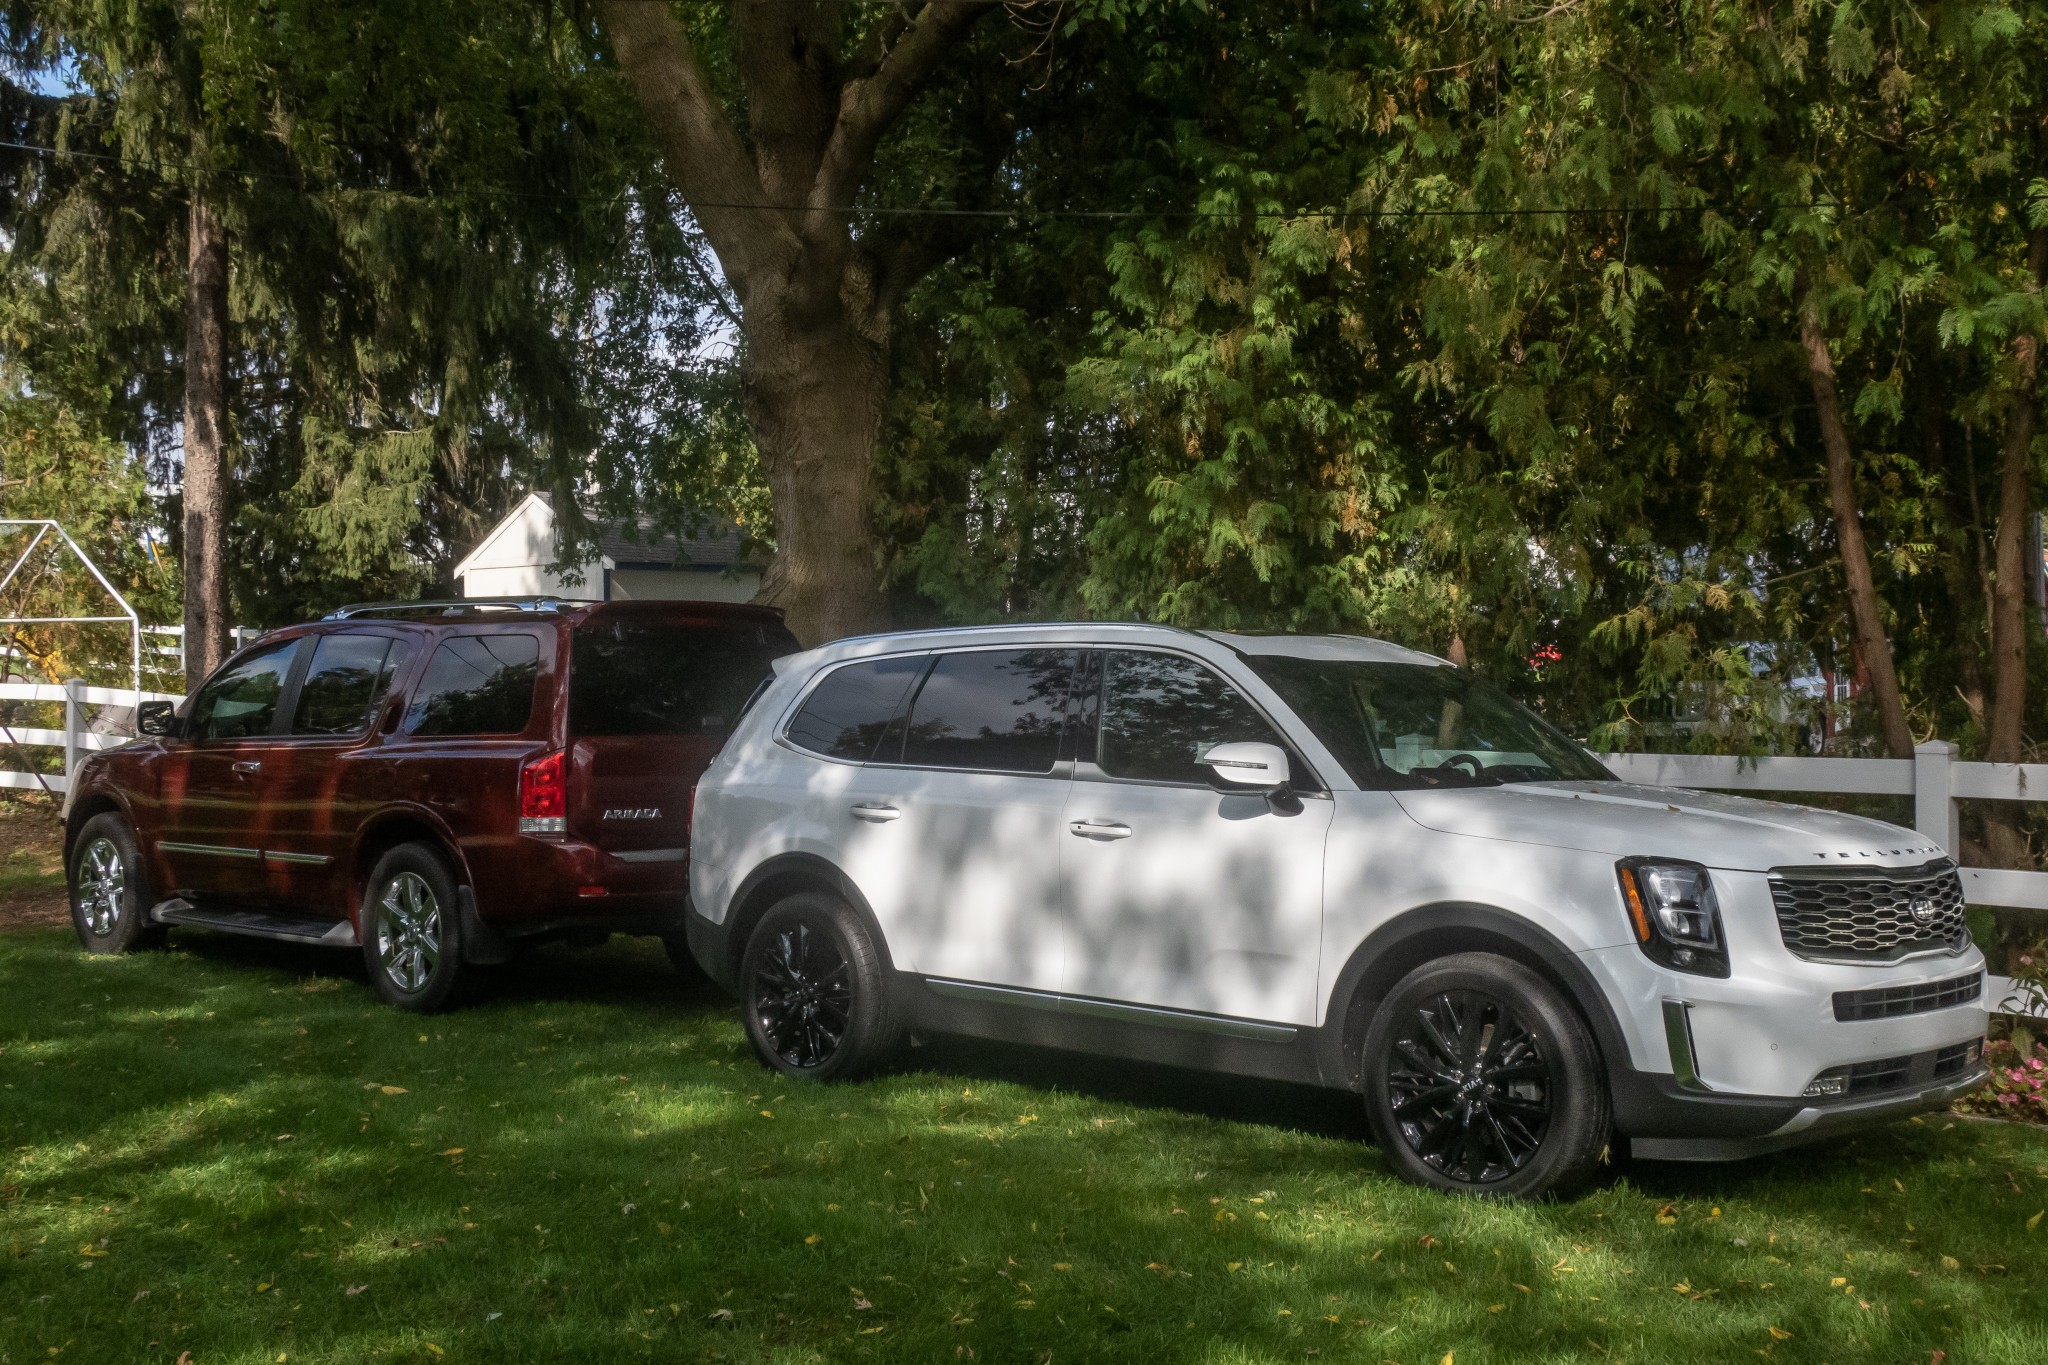 nissan-armada-and-kia-telluride-untitled-2020-08-angle--exterior--front--rear--red--white.jpg